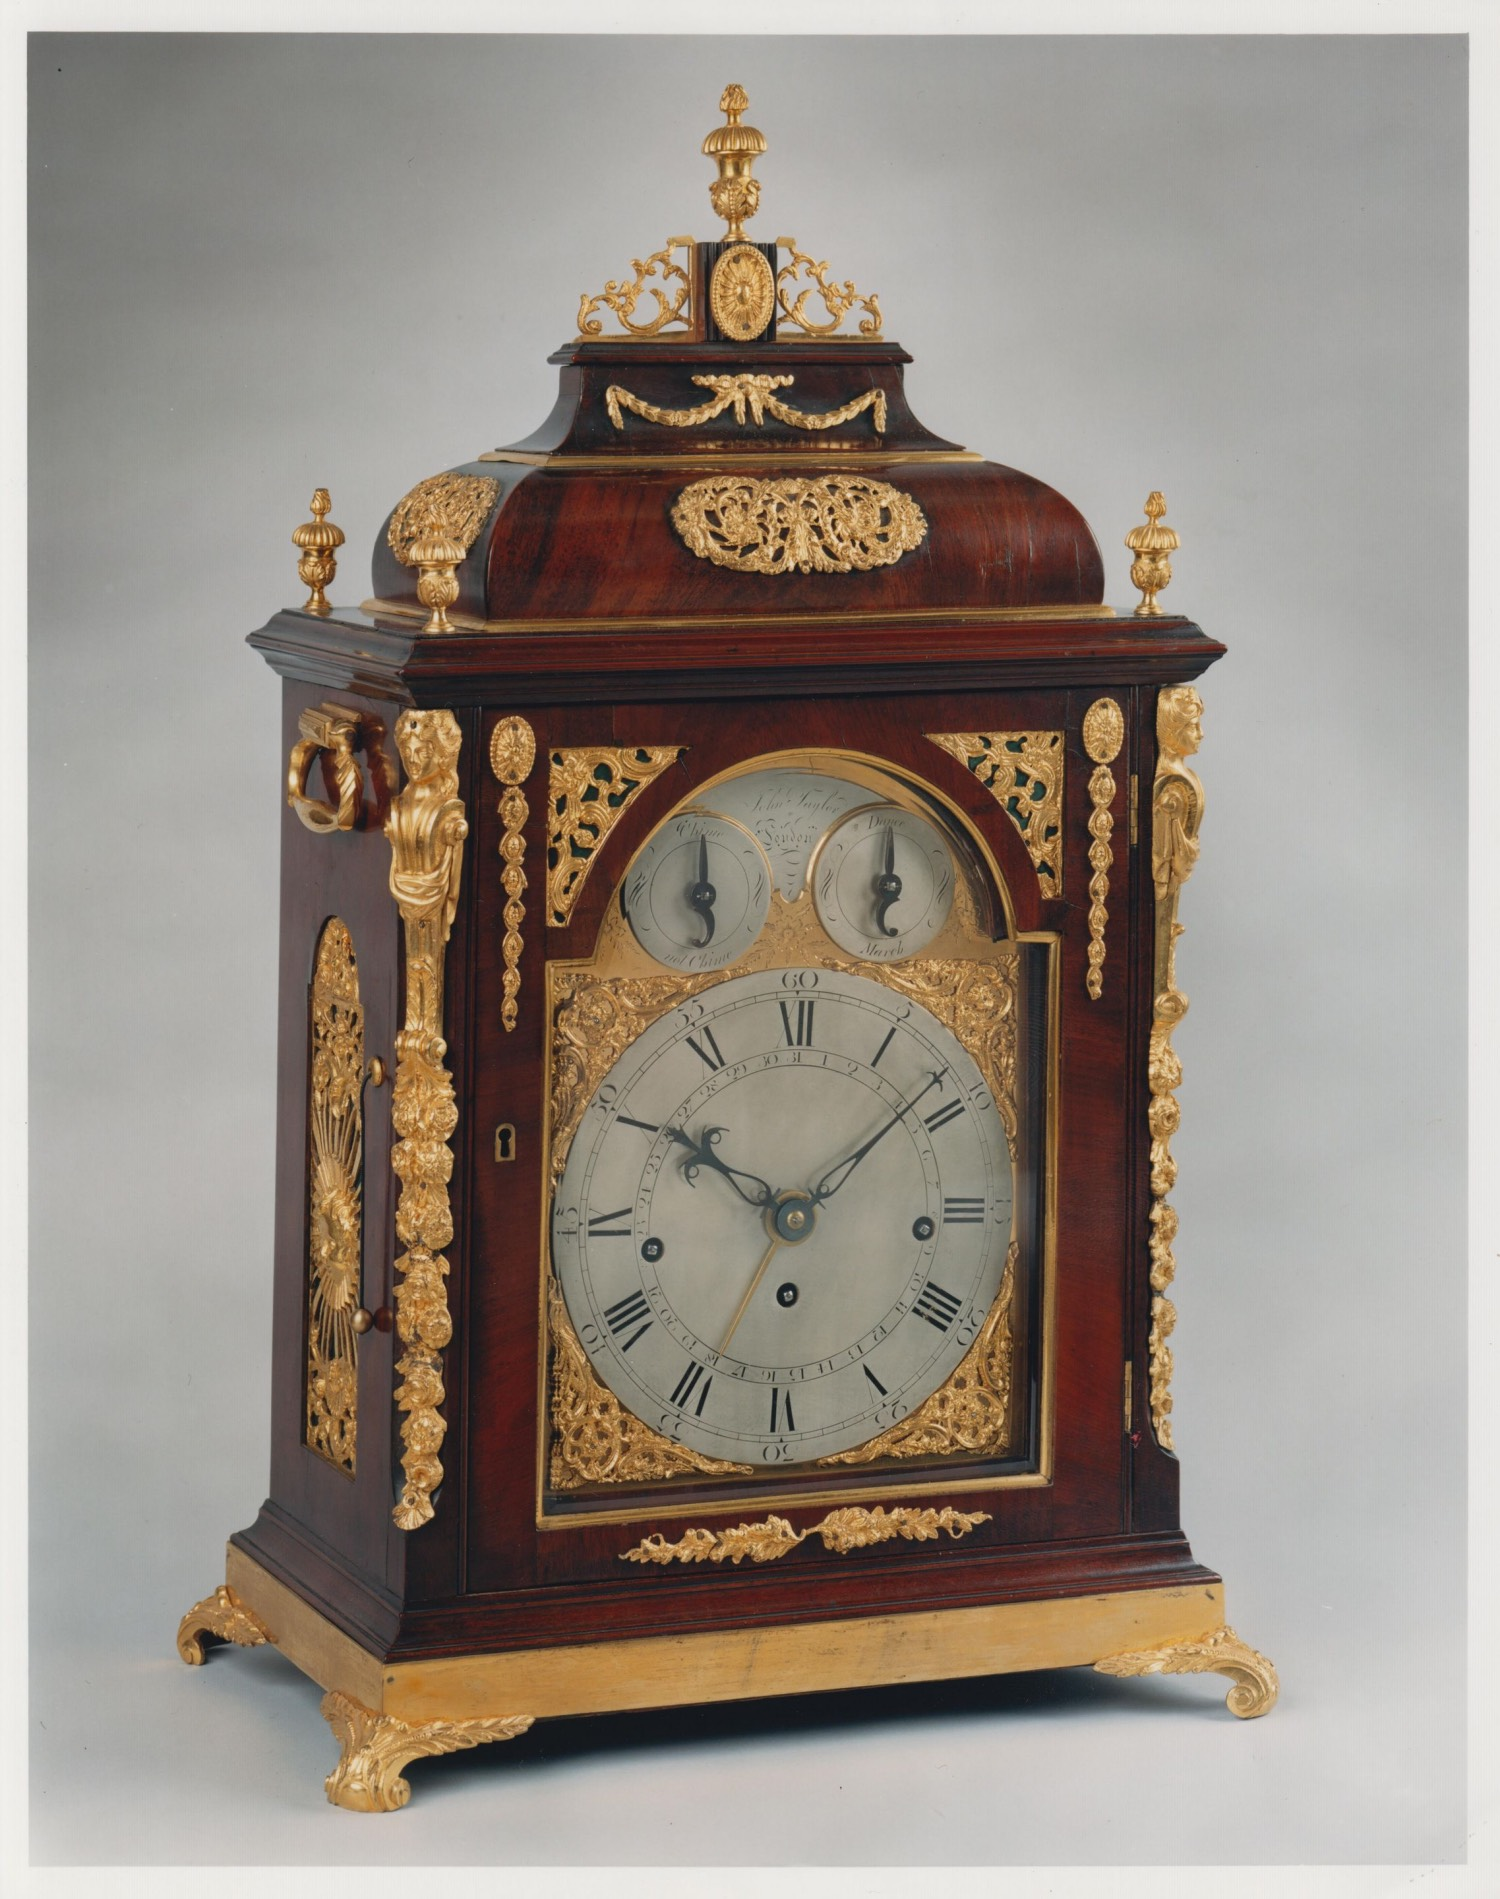 JOHN TAYLOR. A RARE MUSICAL BRACKET CLOCK BY THIS EXCELLENT CLOCKMAKER